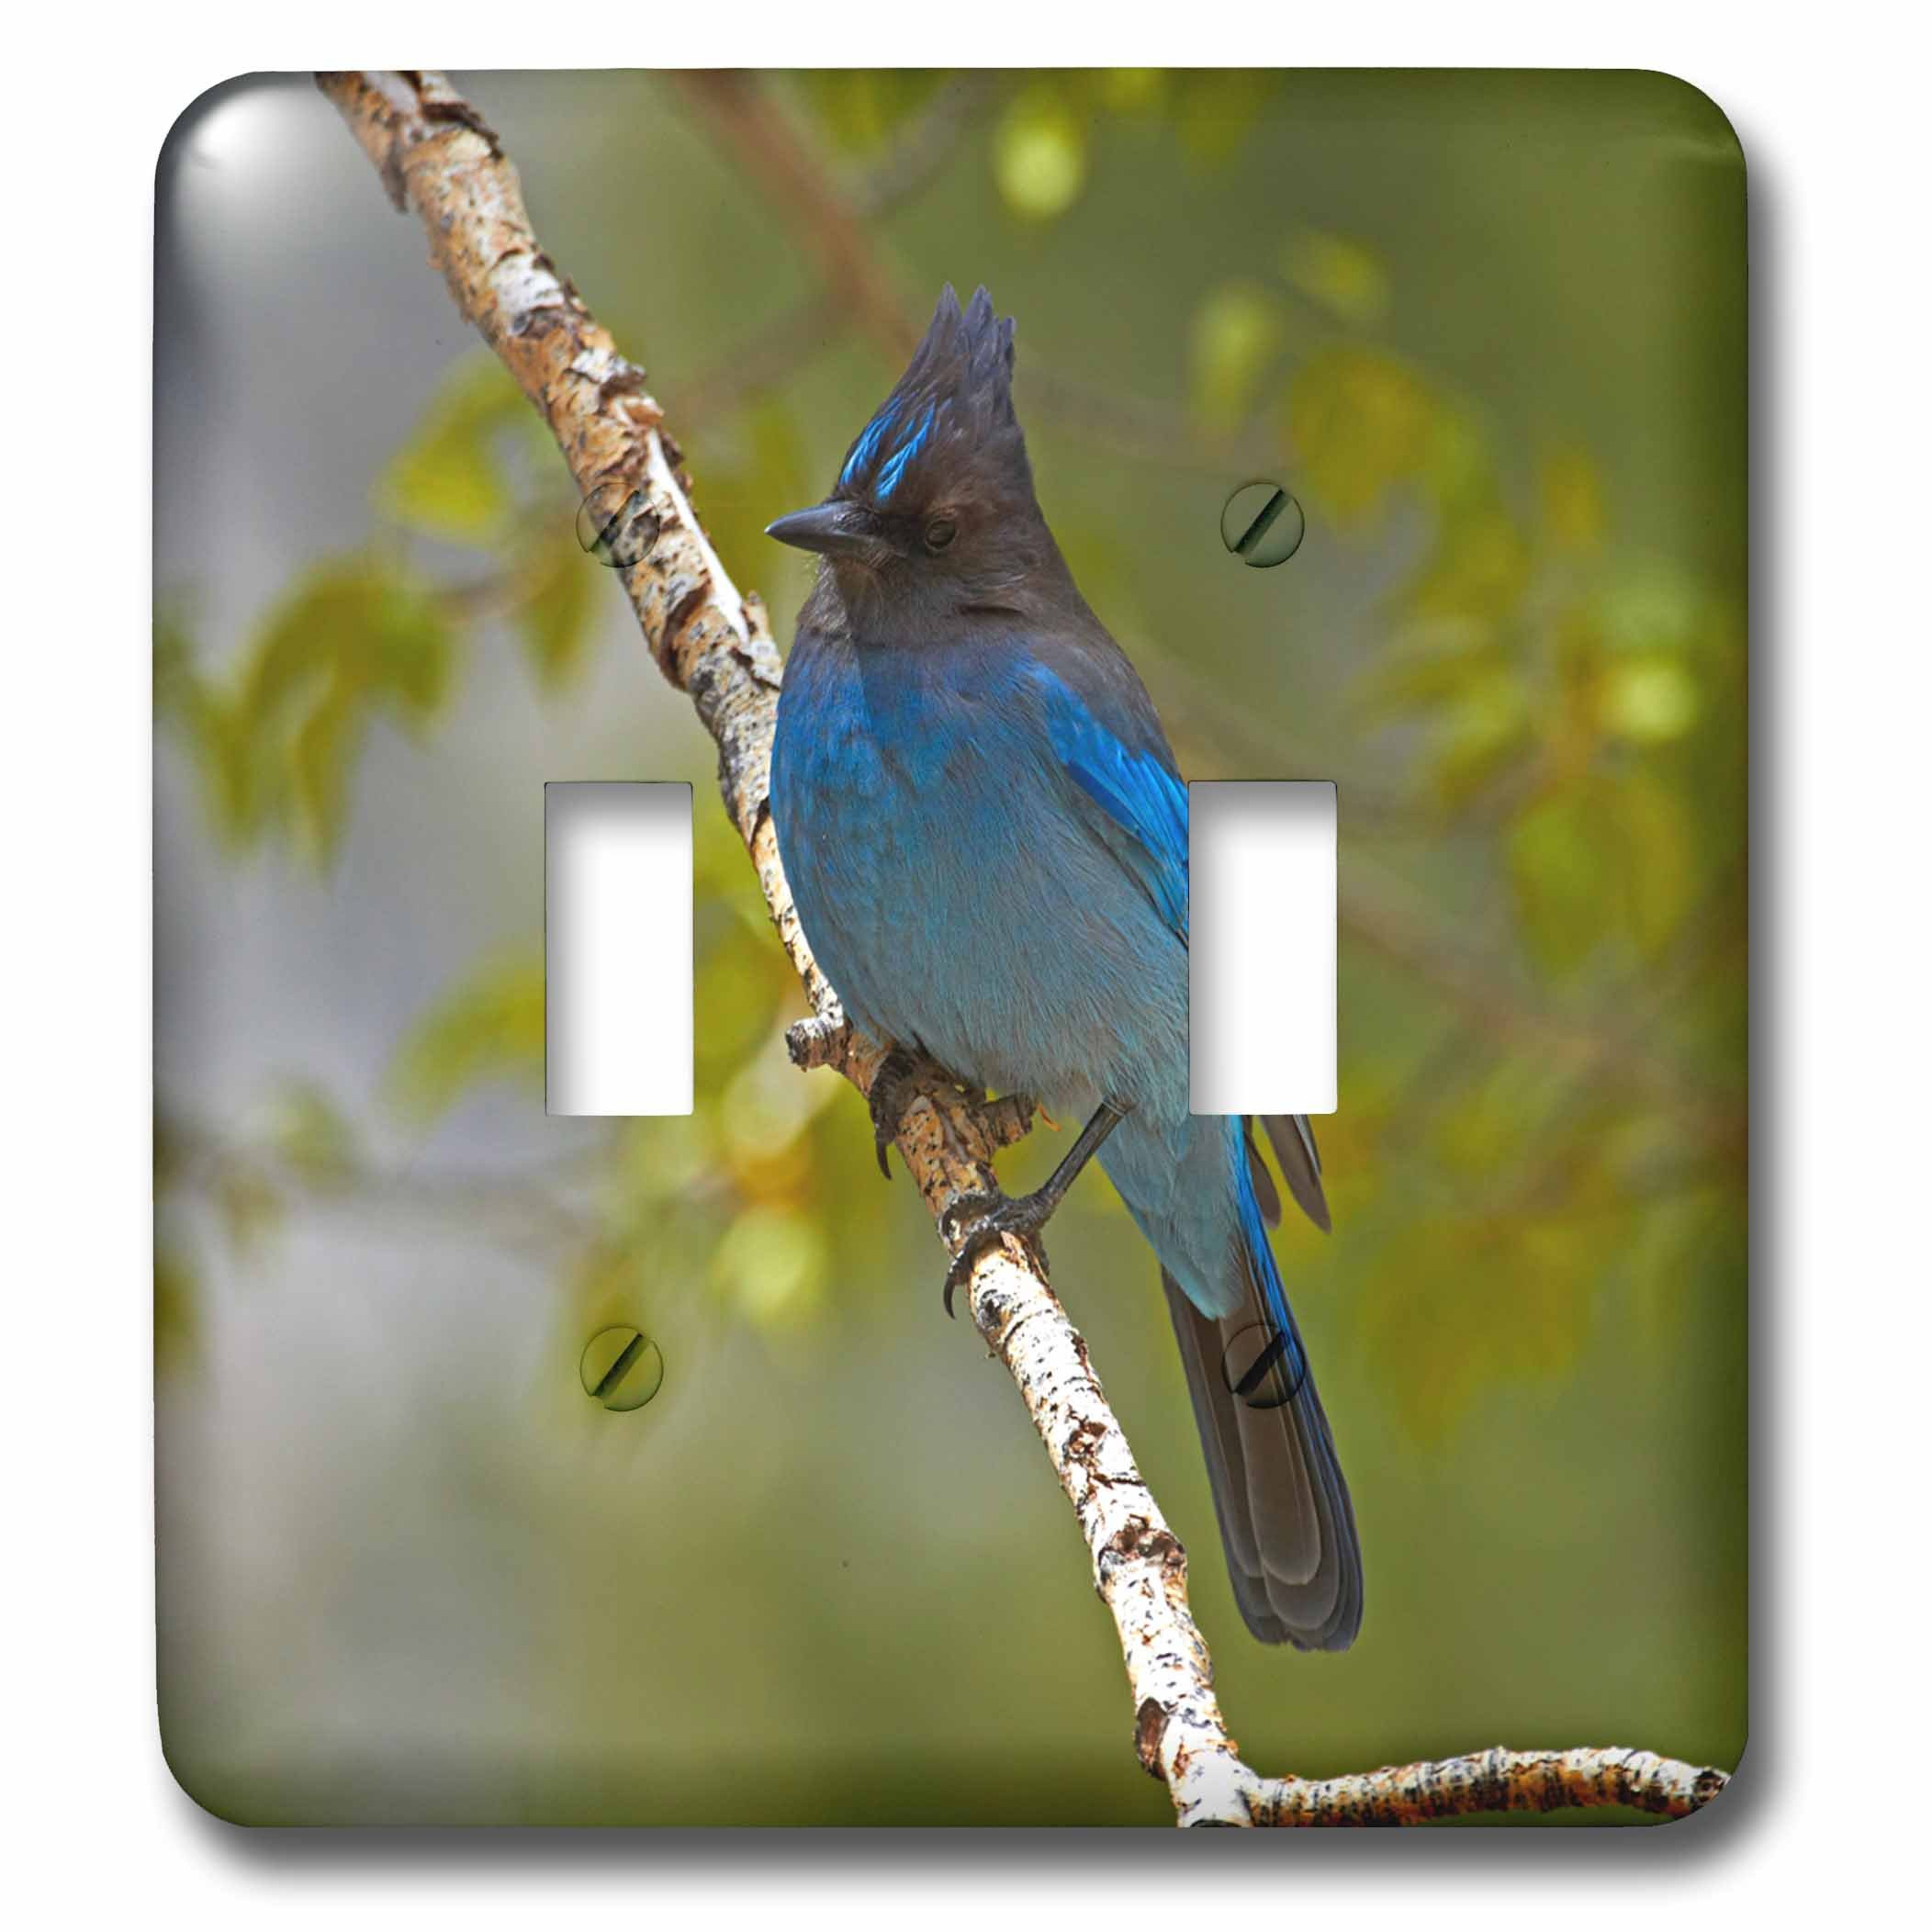 Danita Delimont - Birds - Stellers jay, Sierra, California, USA - Light Switch Covers - double toggle switch (lsp_230097_2)